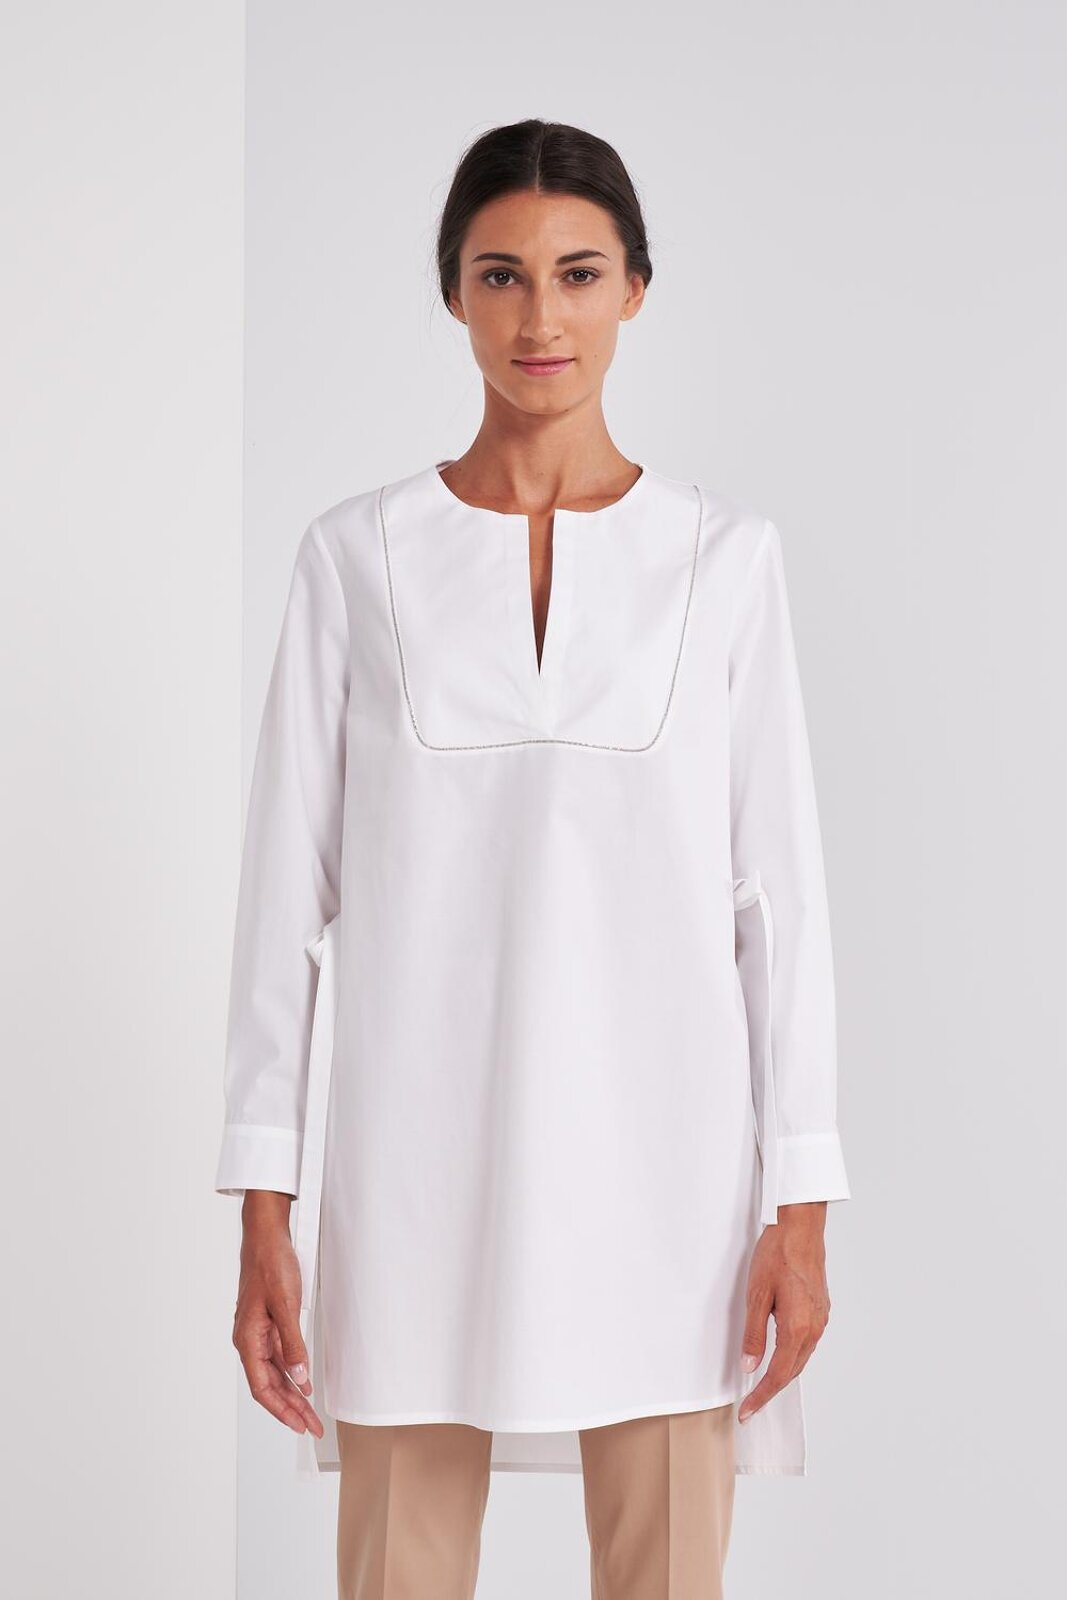 Long Shirt In Pure Cotton Satin With Long Sleeve Round Neckline. Details Of Light Points On The Chest, Side Vents With Bows. Wide fit. - Peserico